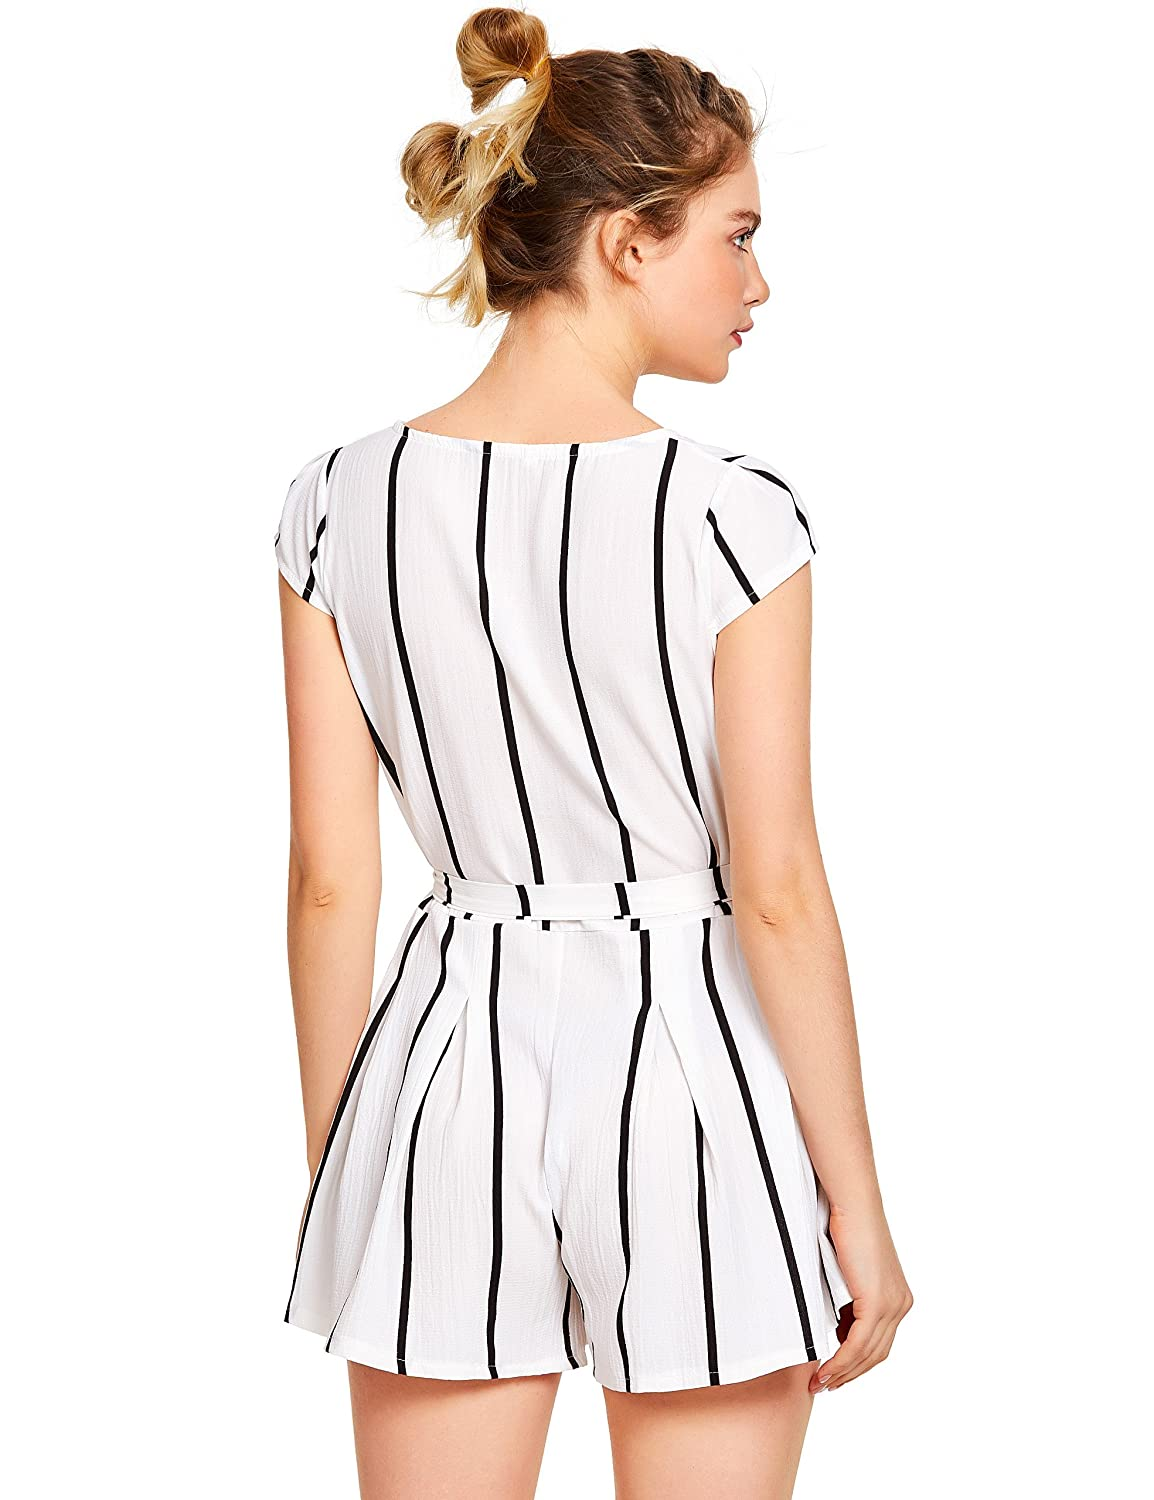 ed8c1626870 Romwe Womens Casual Vertical Striped Jumpsuit Romper with Belt ...